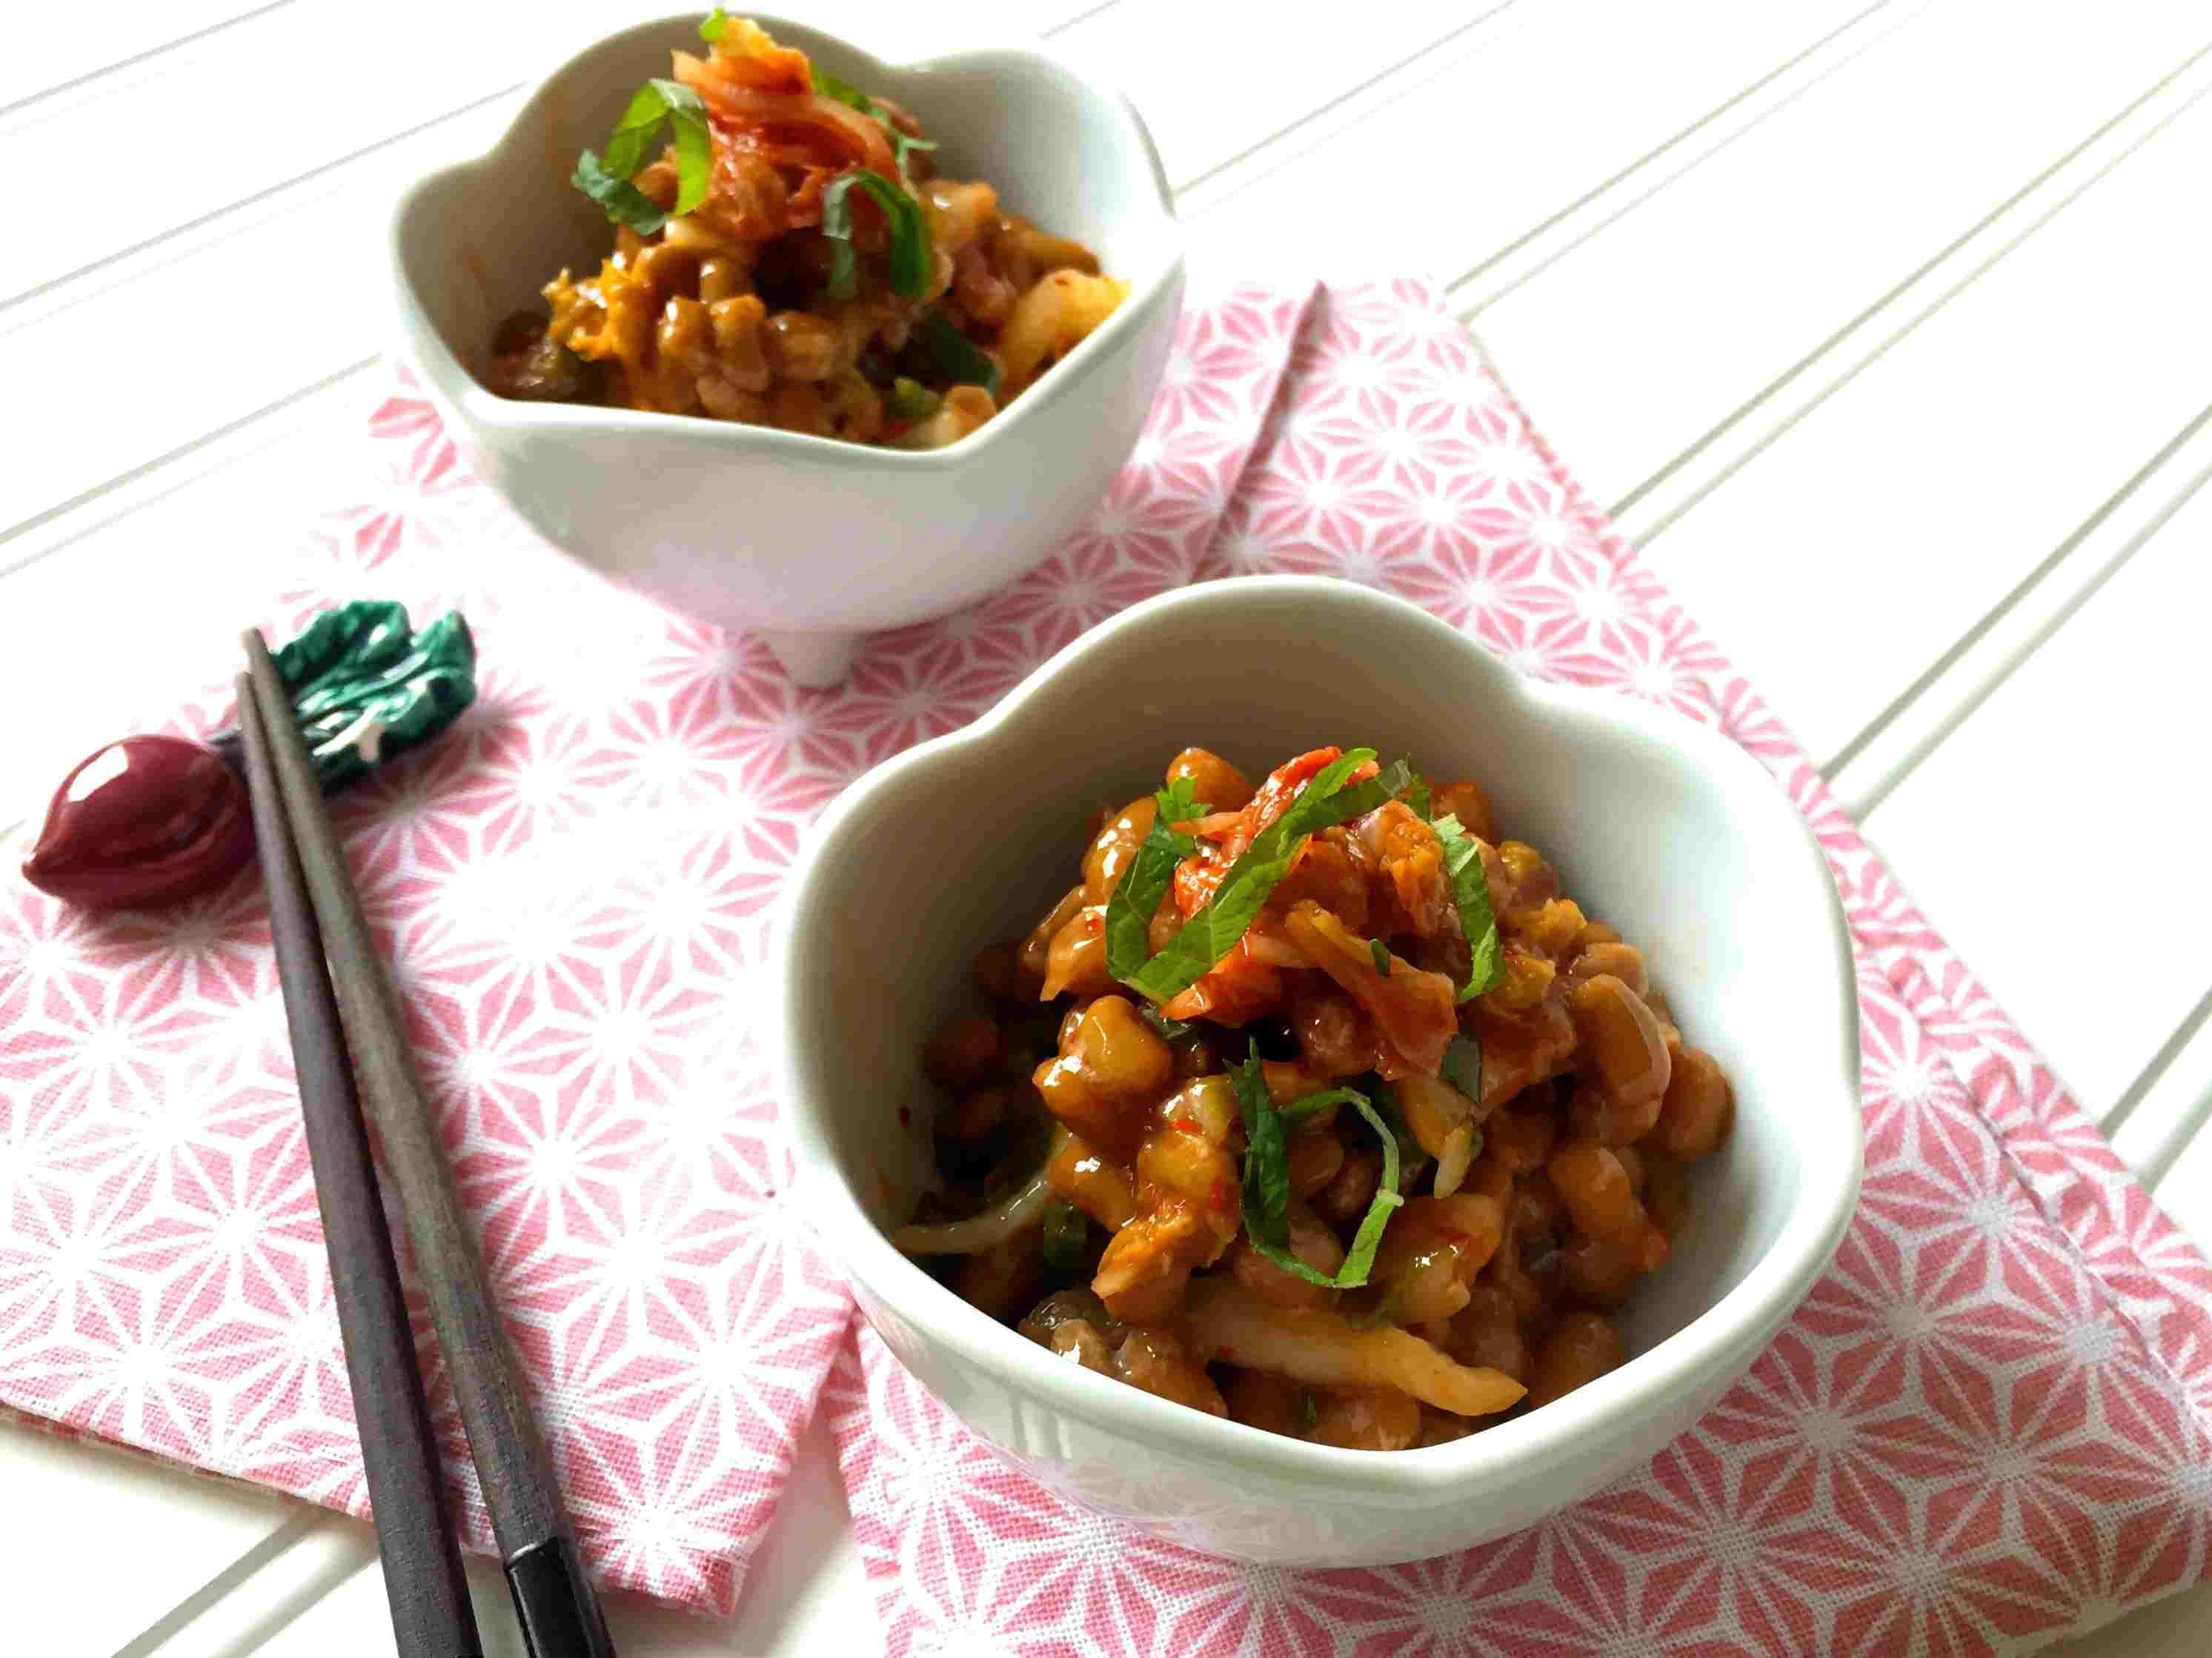 Kimchi (spicy cabbage pickles) with natto (fermented soy beans) and green perilla leaf